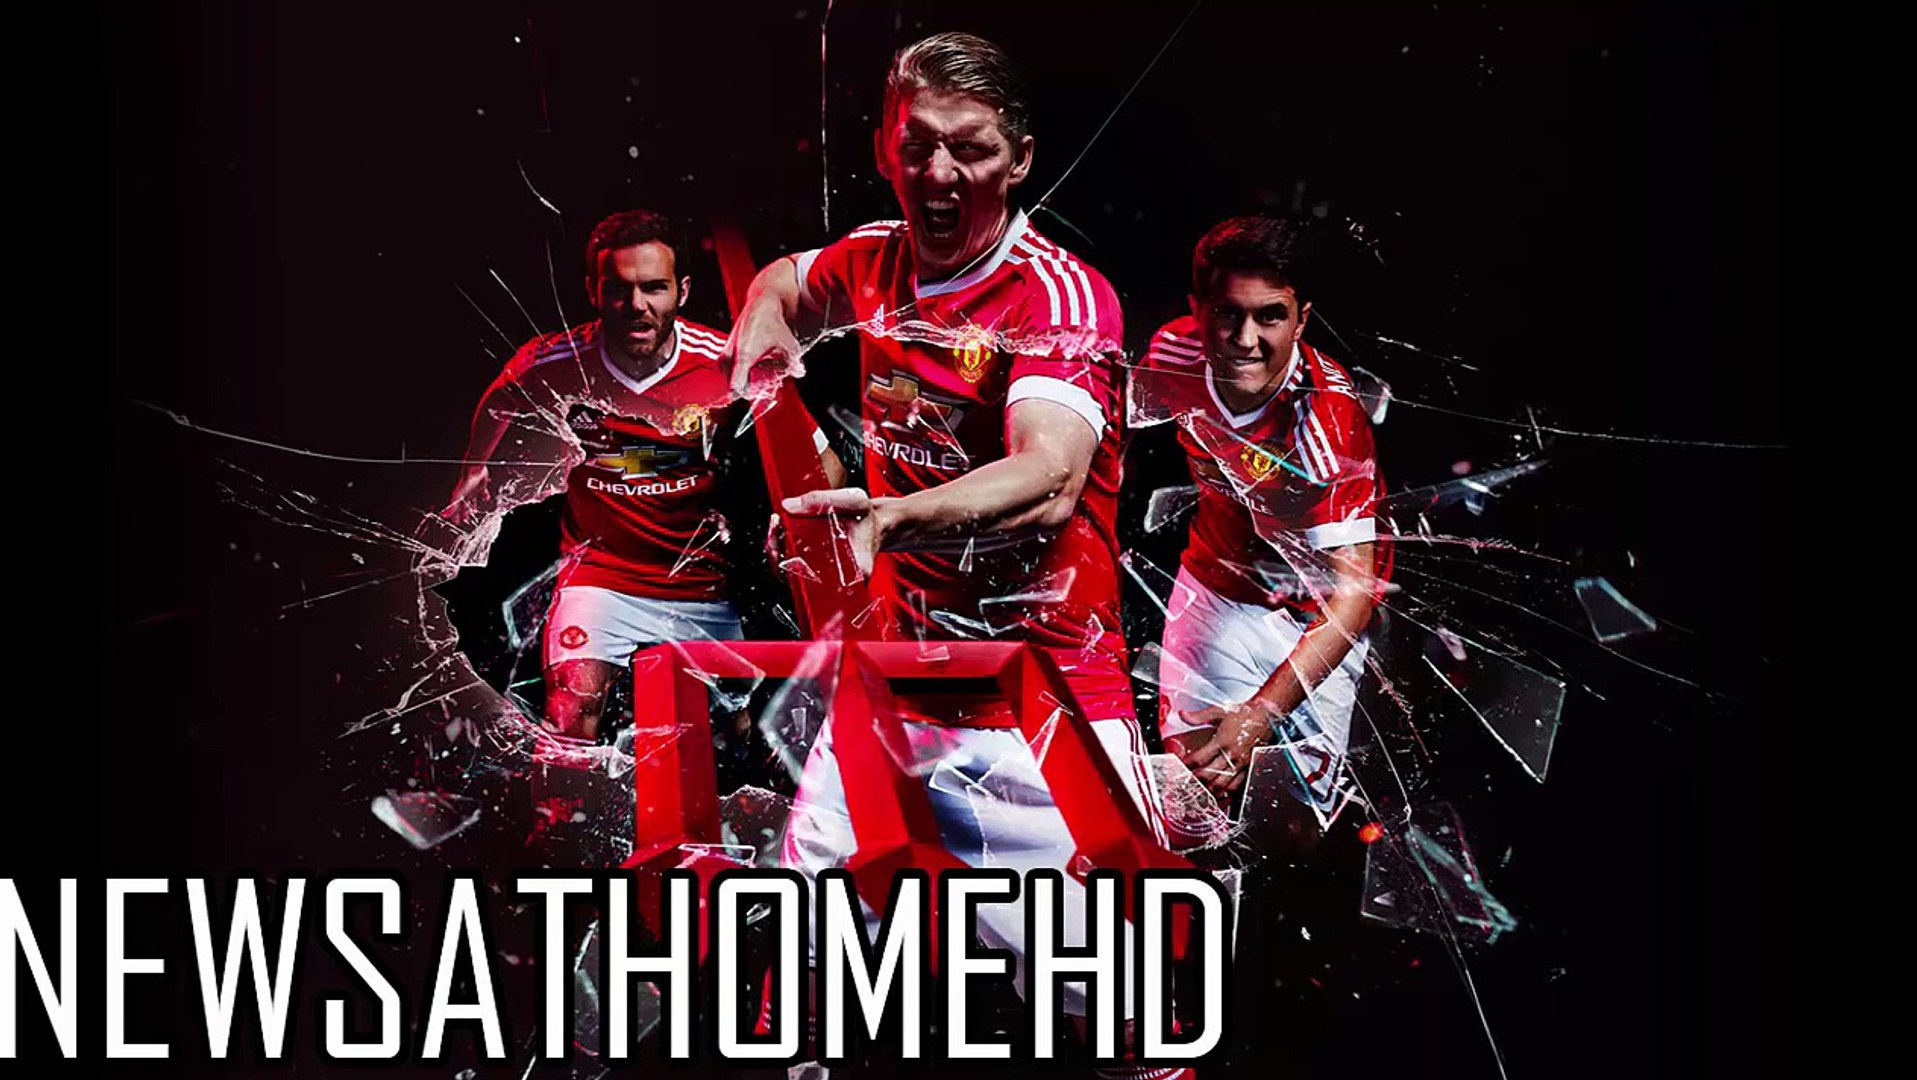 Manchester United New Kit 2015/16 - Adidas, Manchester United Football Club - Man U